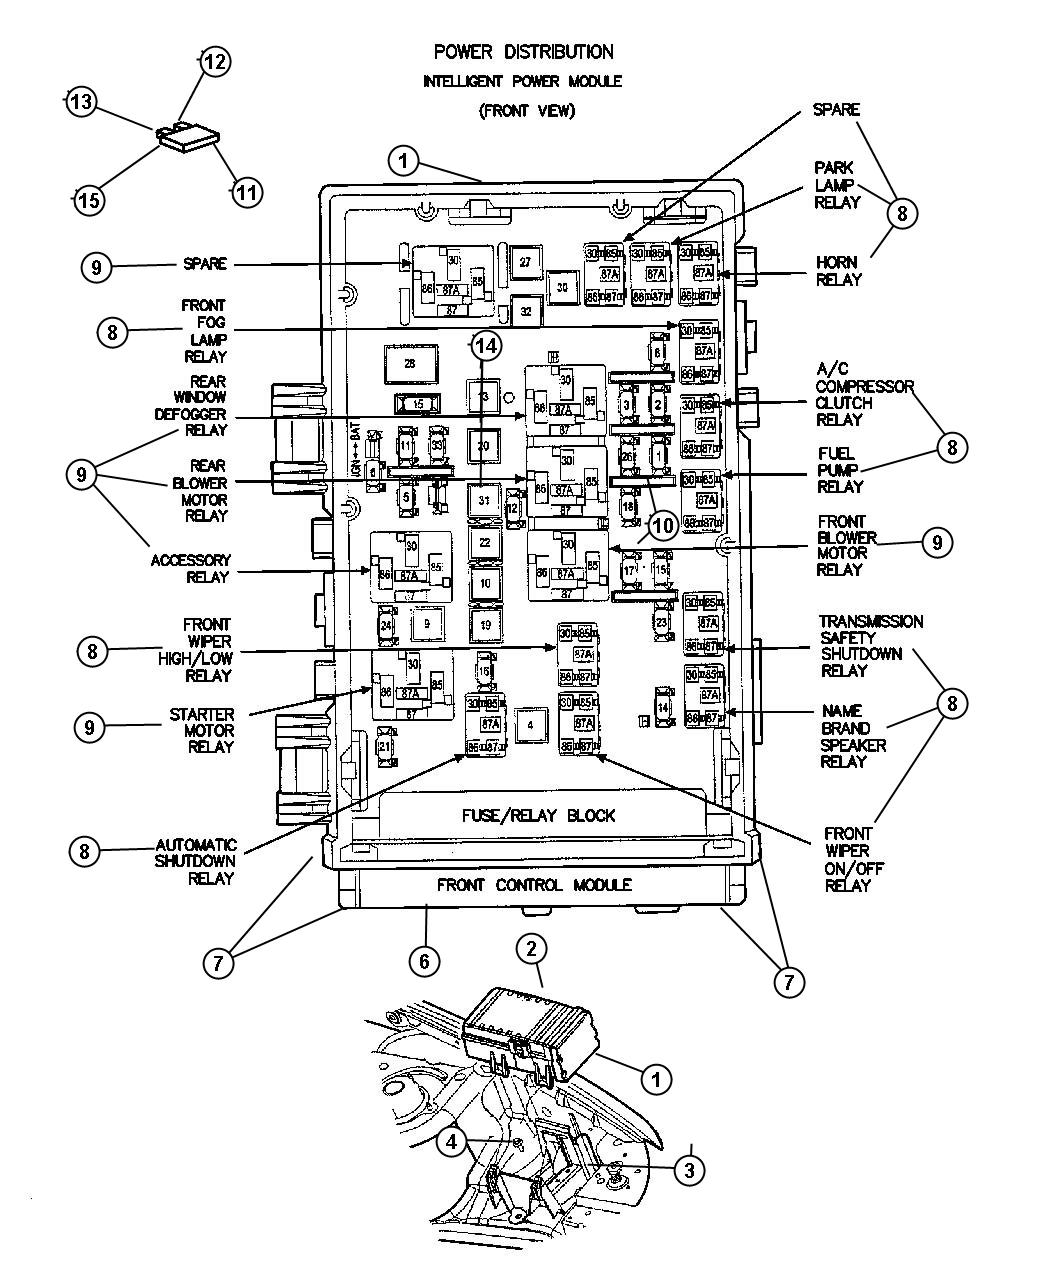 2003 Chrysler Voyager Fuse Box Diagram Free Wiring For You 2001 300m Panel Get 300 Layout